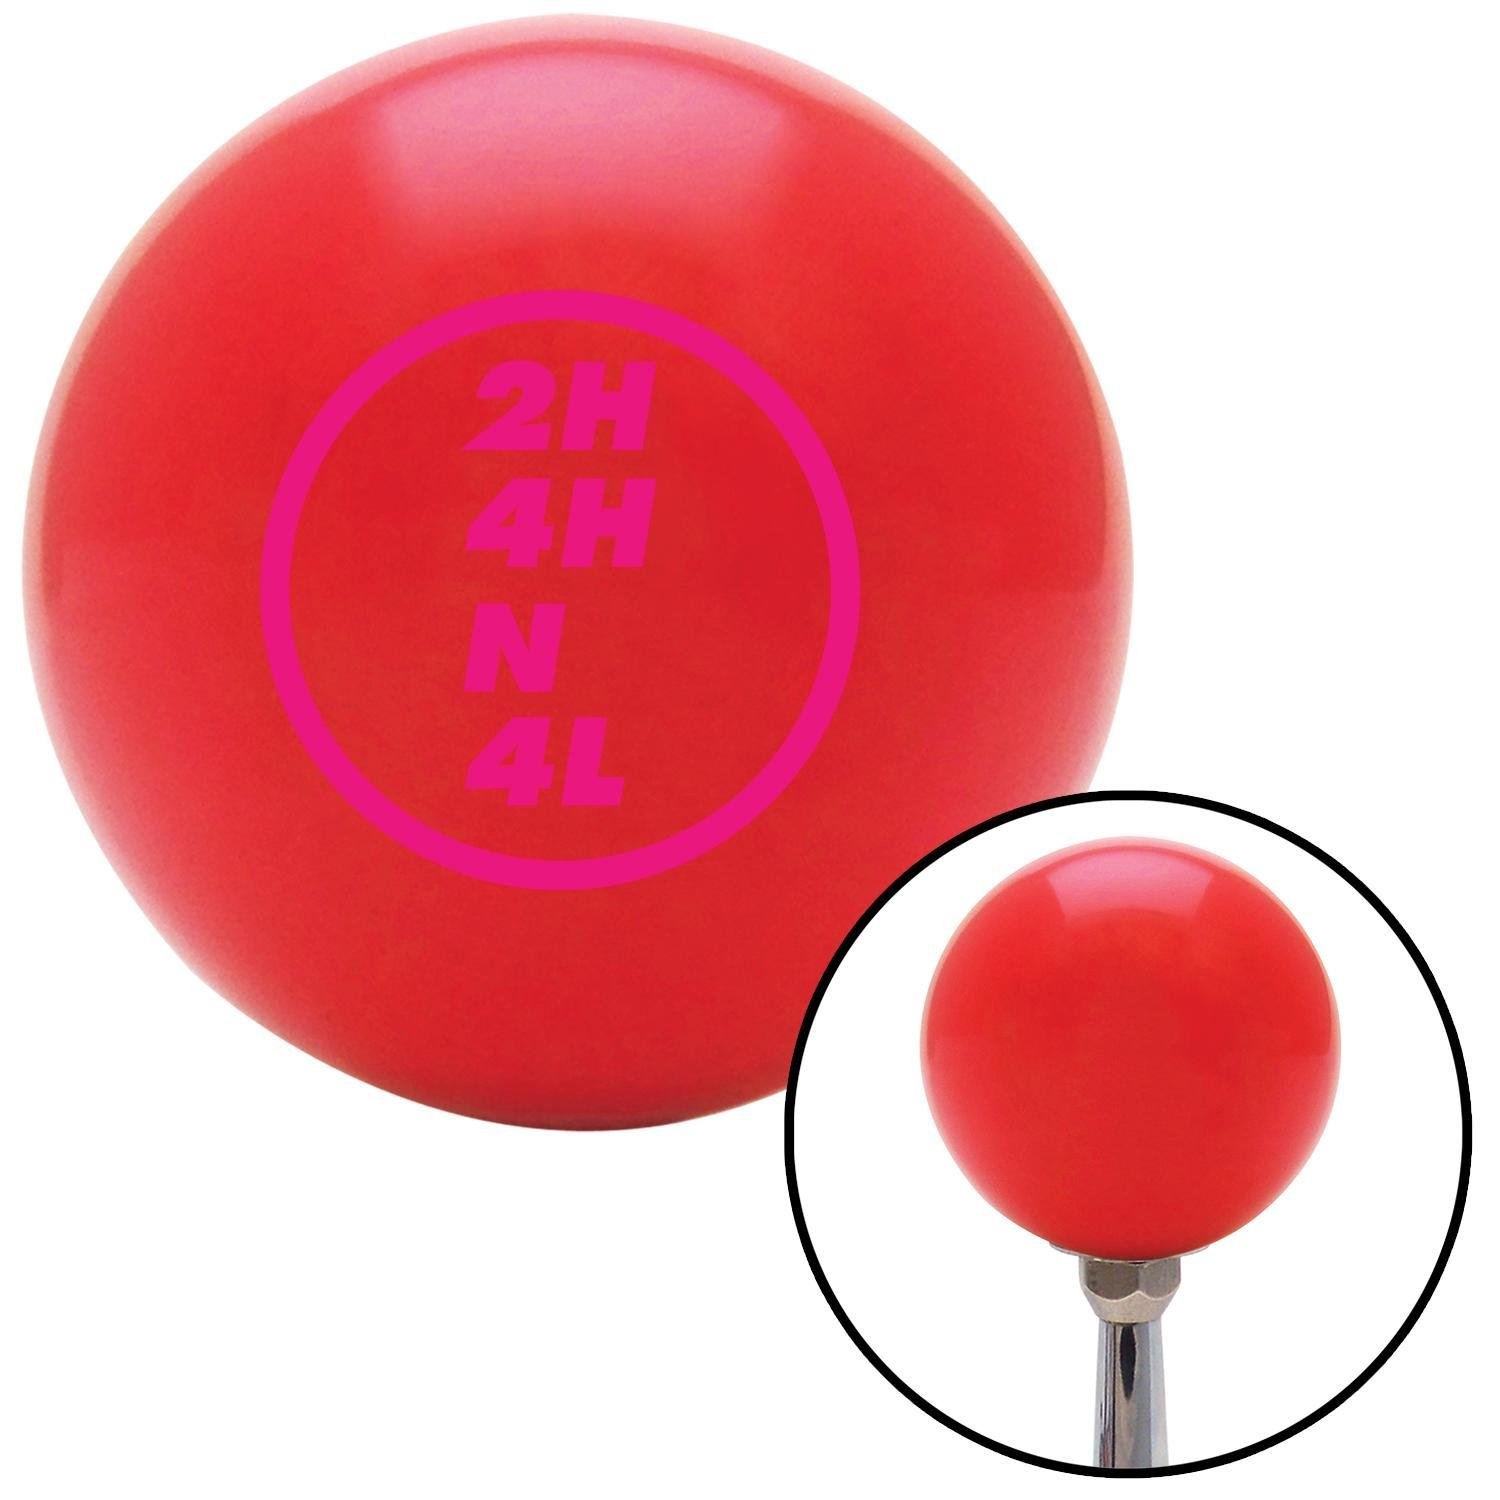 American Shifter 100738 Red Shift Knob with M16 x 1.5 Insert Pink Transfer Case #8